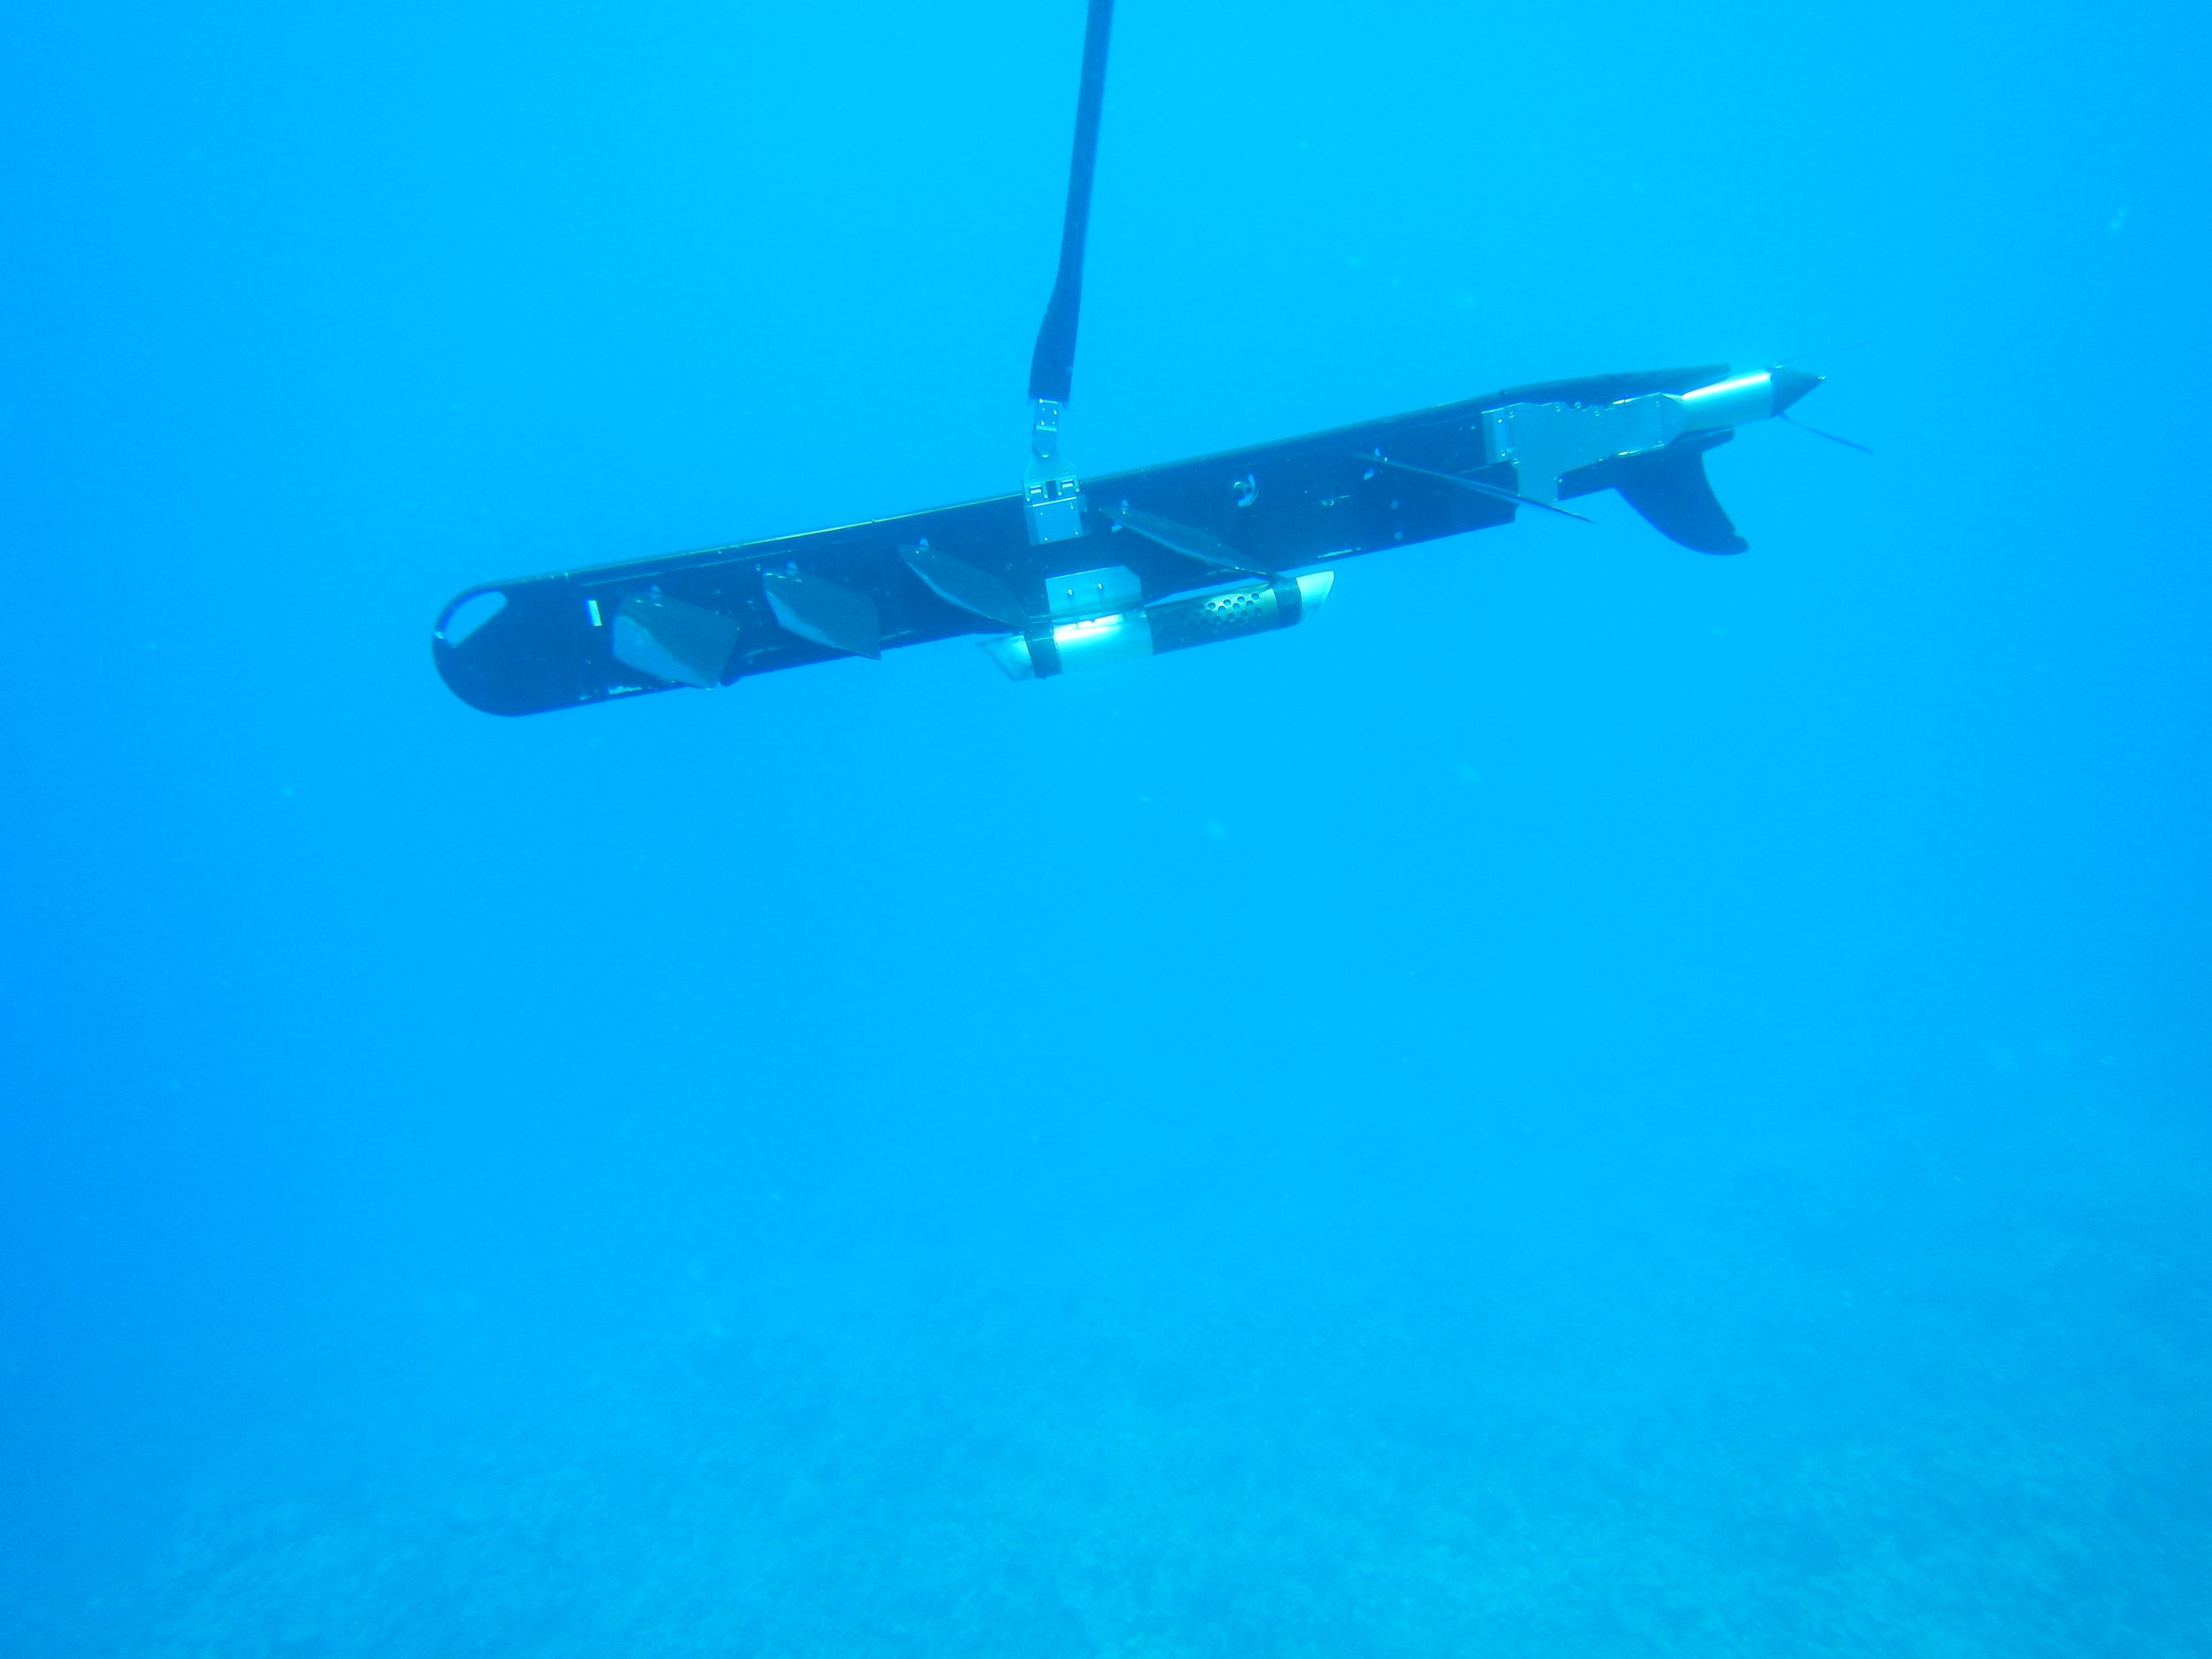 Image 3. Hydrophone mounted to center of sub